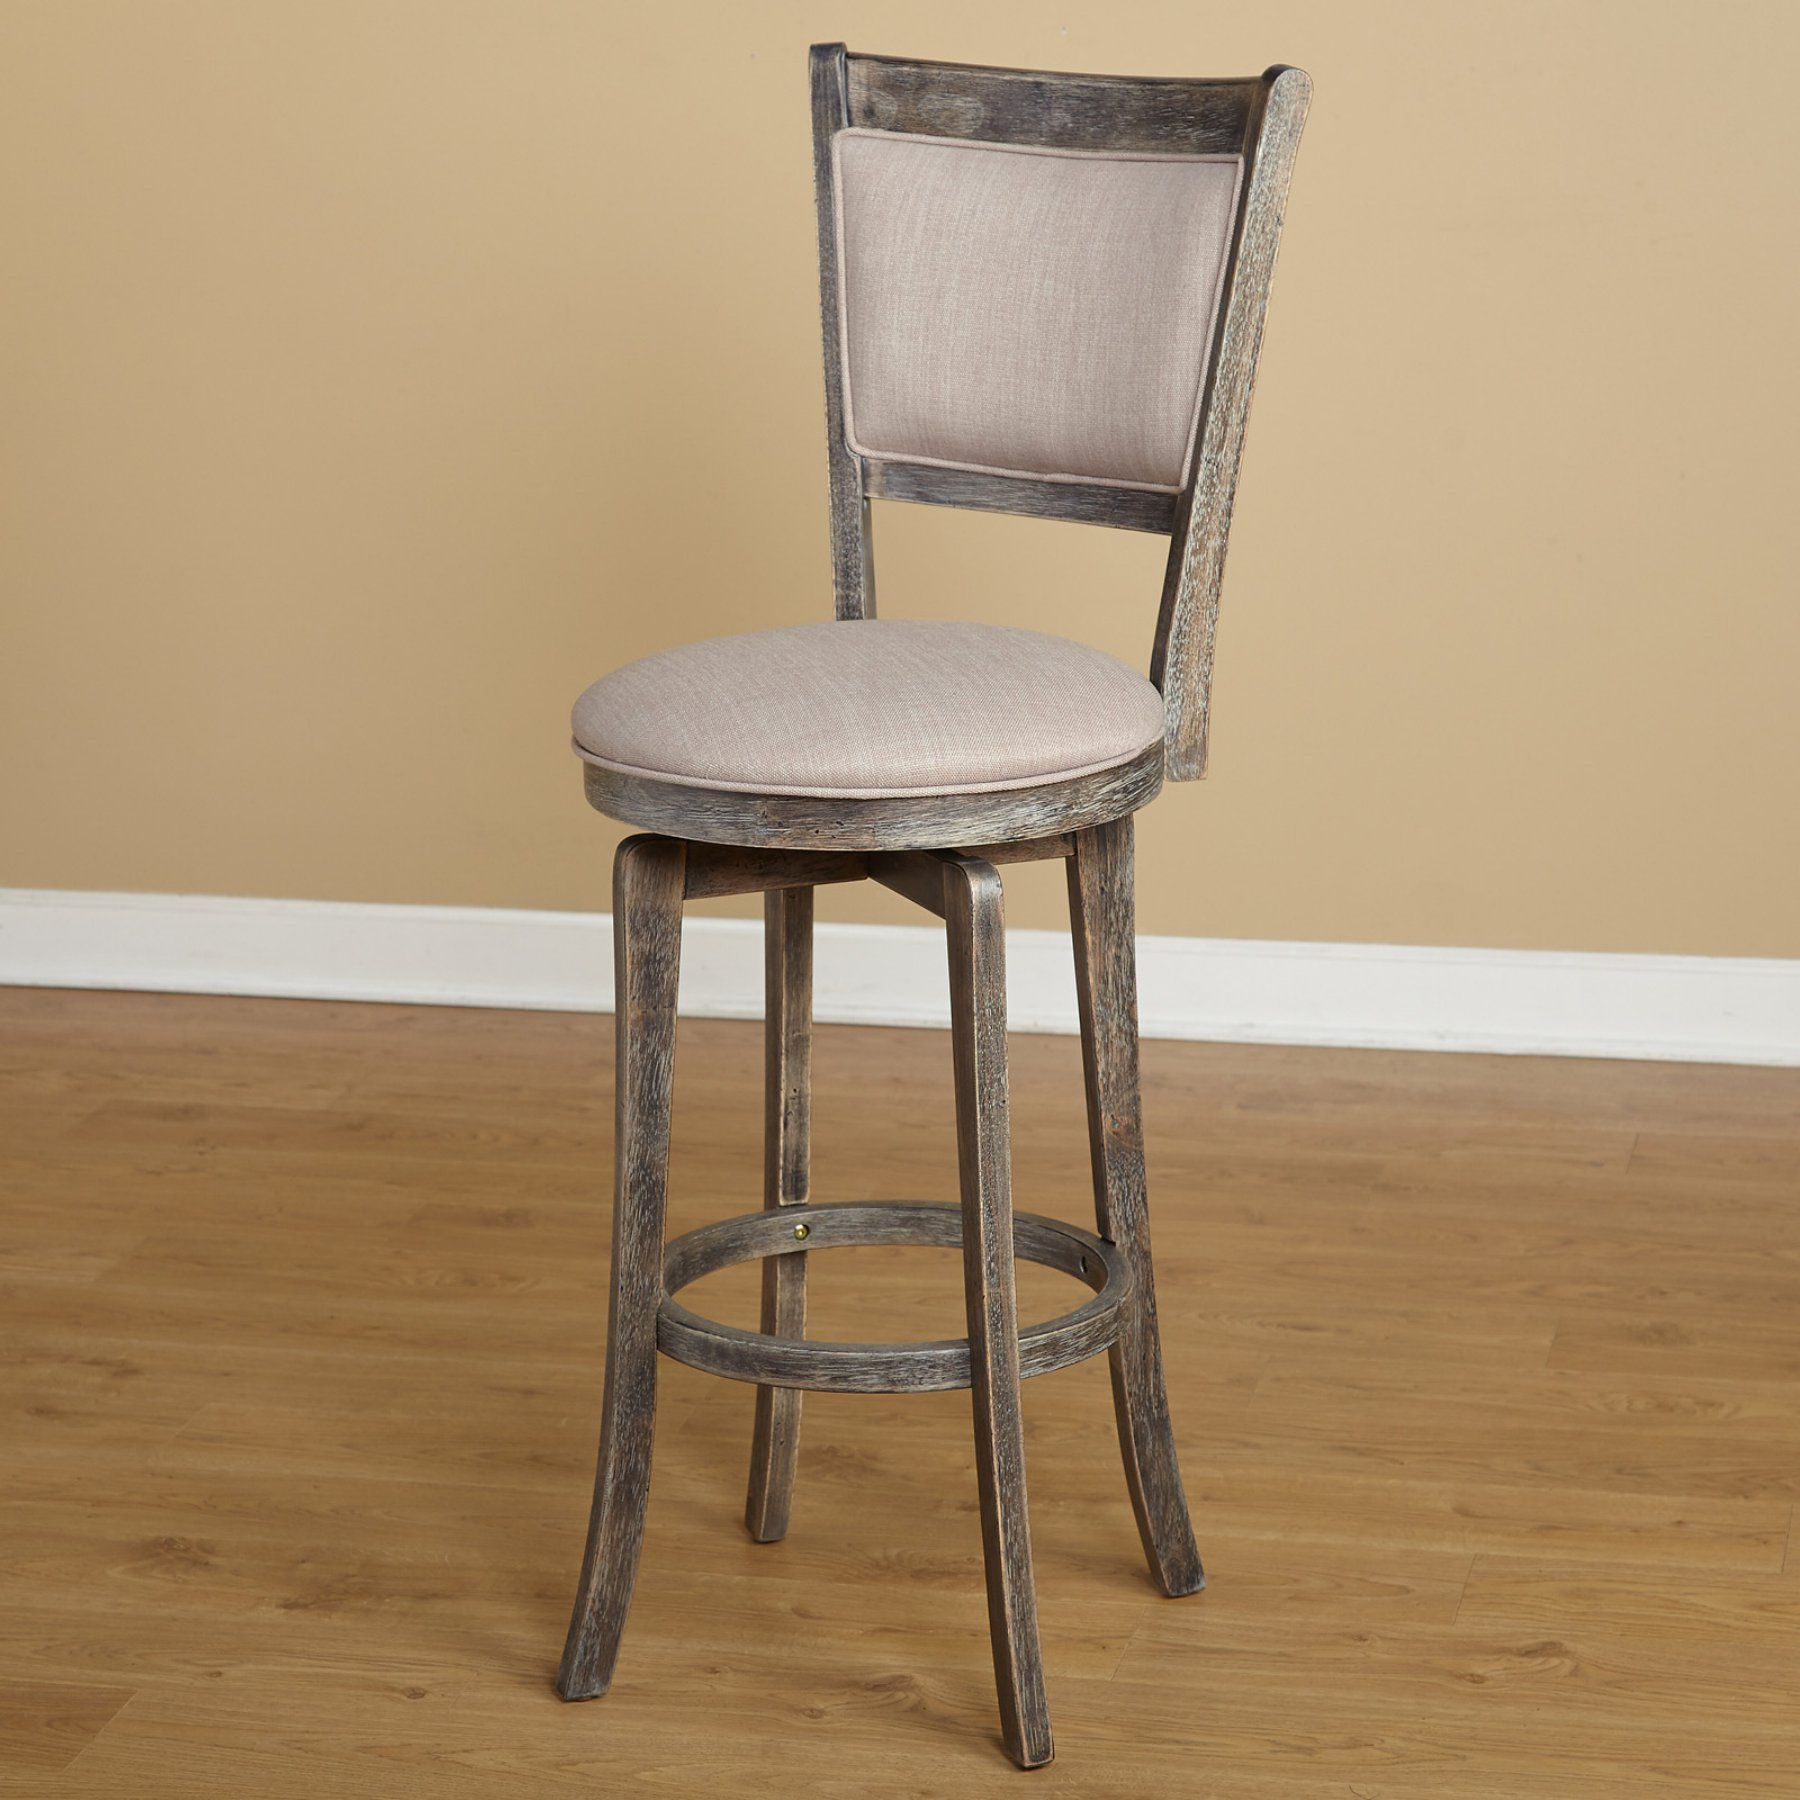 Pleasing Target Marketing Systems French Country Bar Stool 70930Gry Machost Co Dining Chair Design Ideas Machostcouk